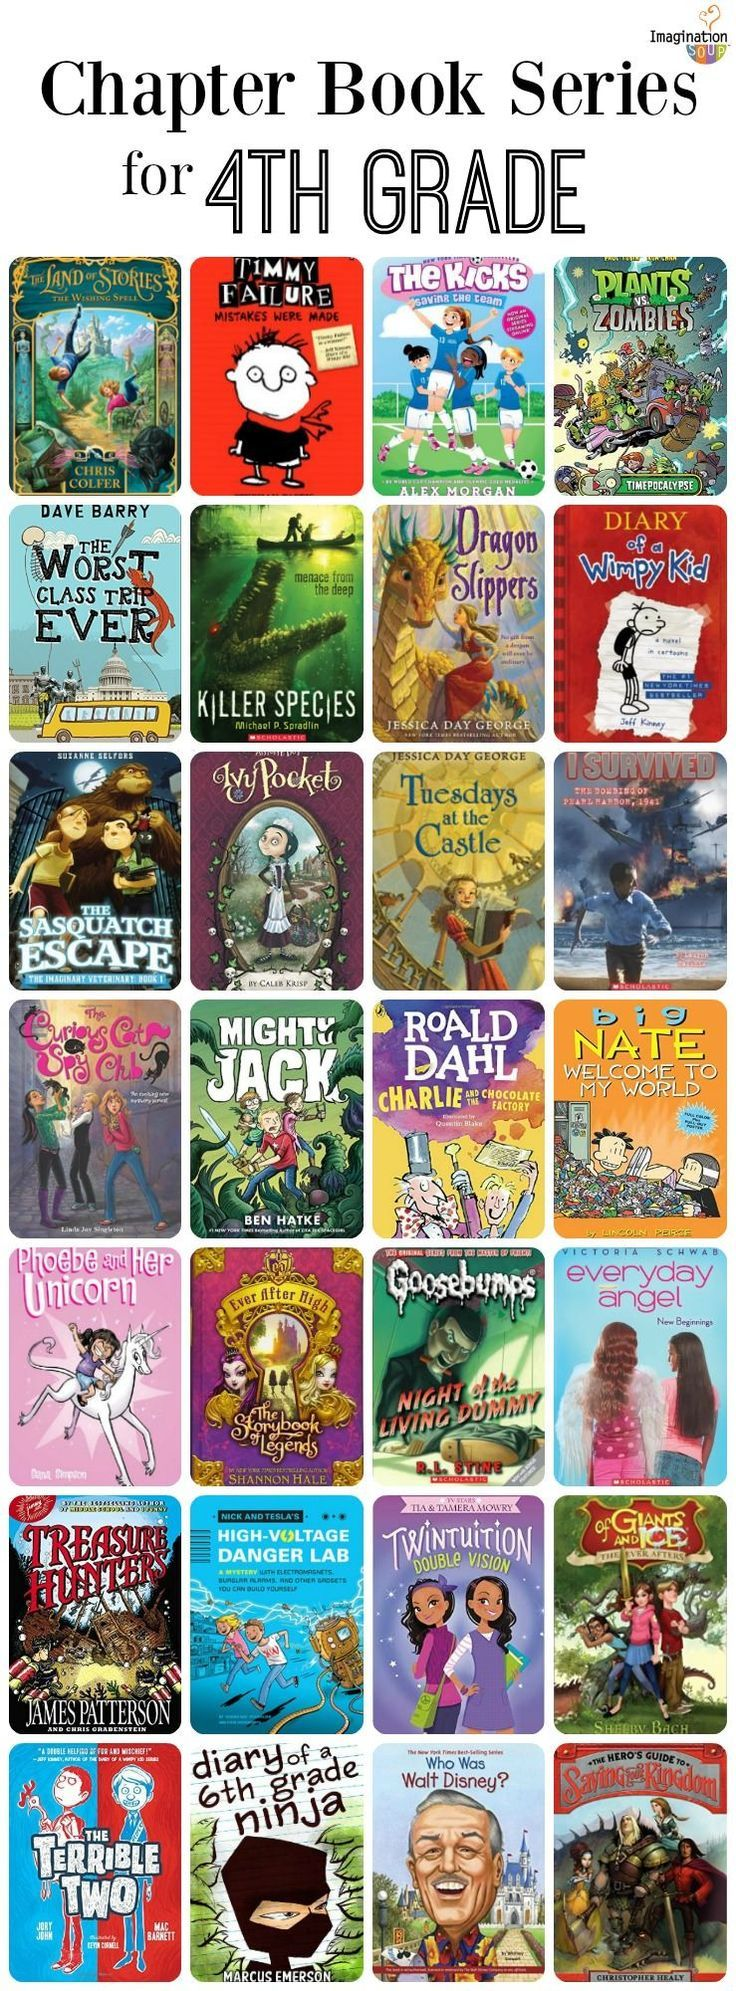 addicting chapter books series for 4th grade (fourth graders)